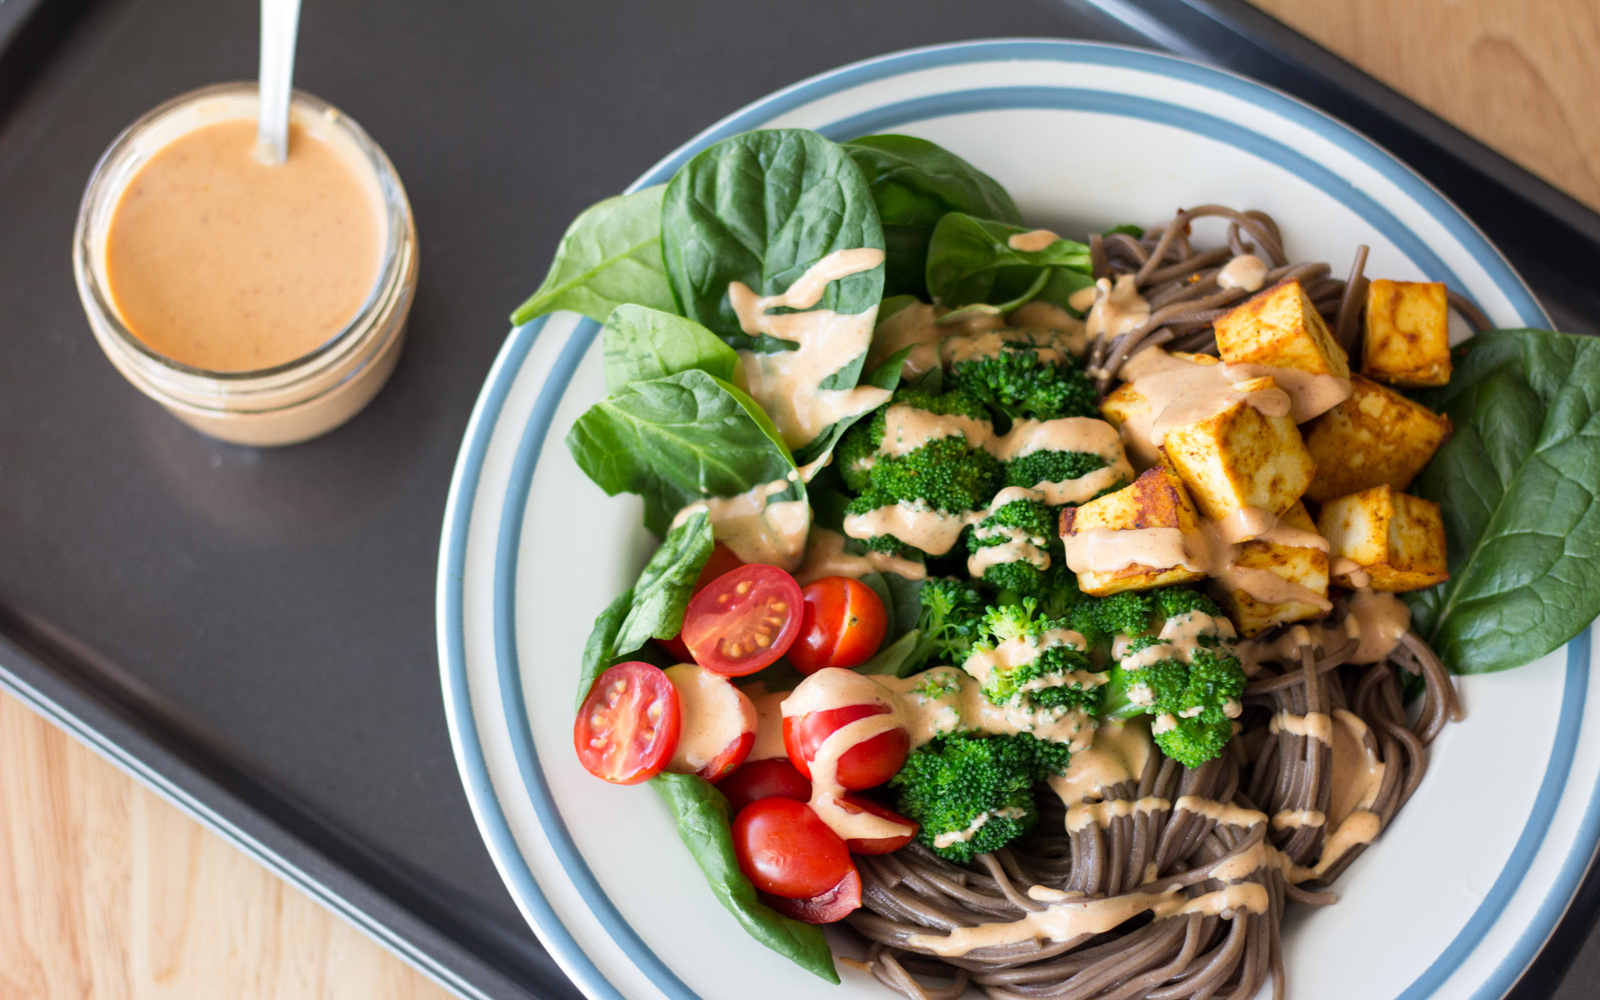 Vegan Soba Noodle Bowl With Peanut Sauce with greens